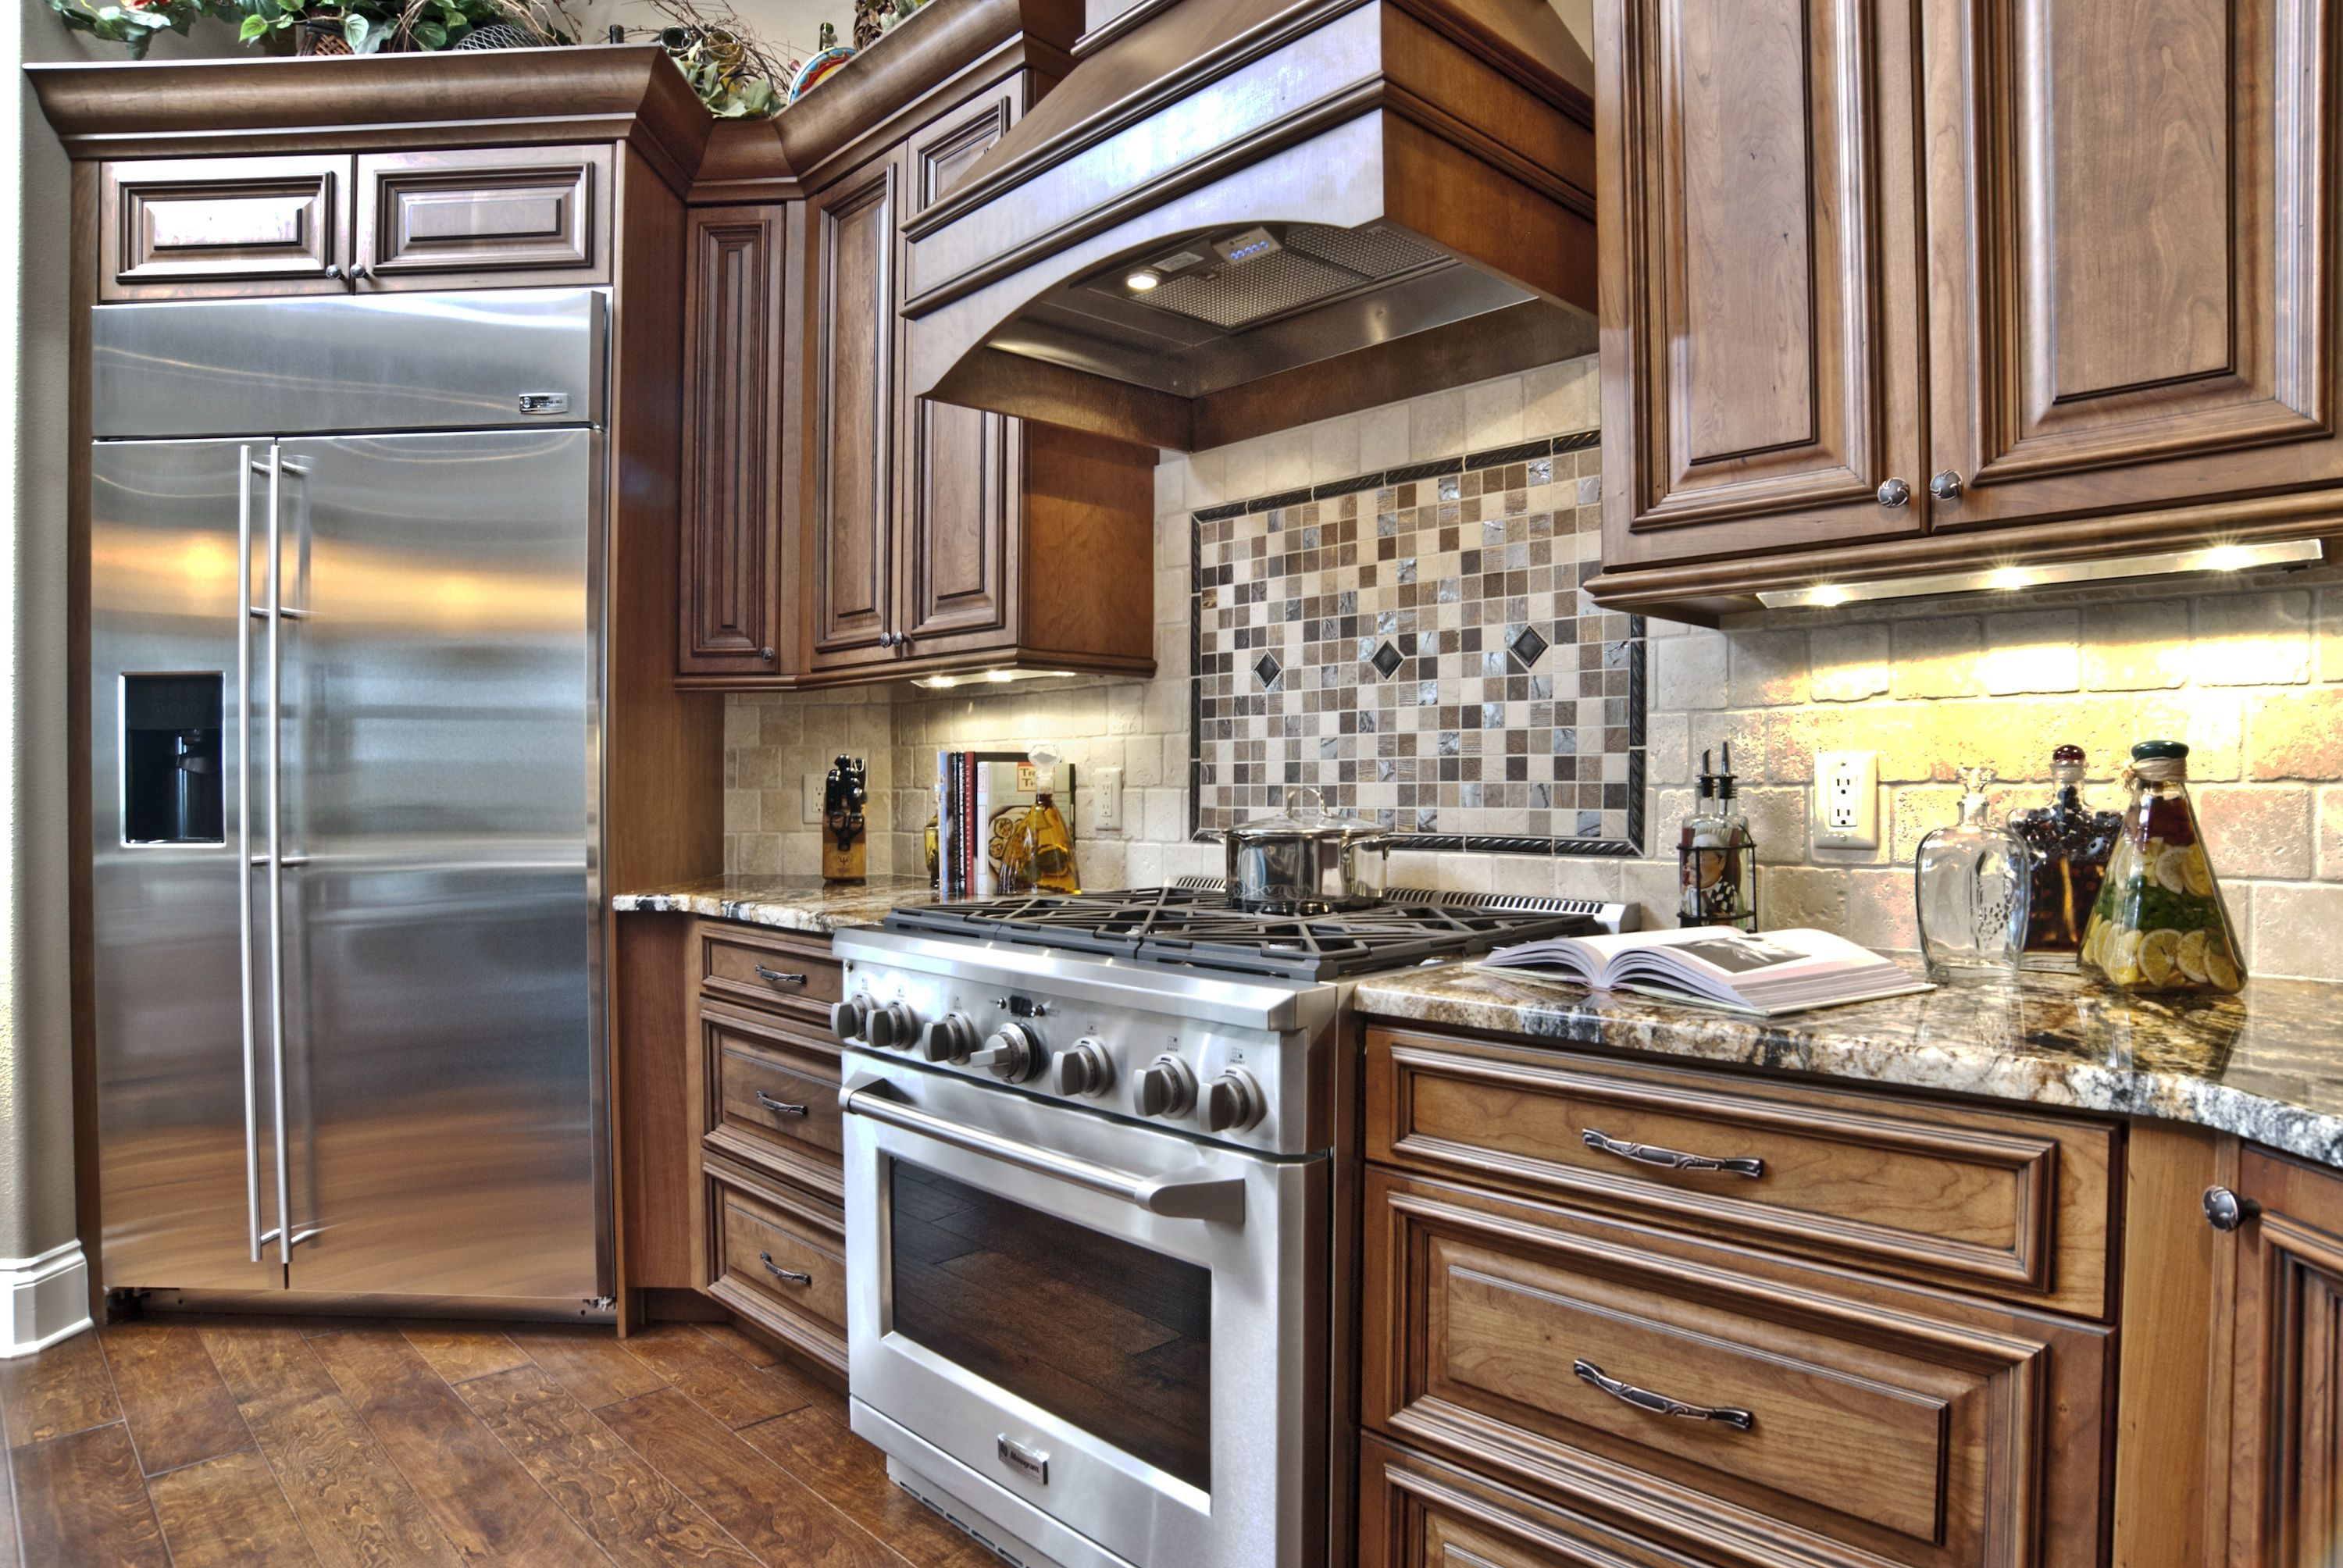 Christopher Burton Luxury Homes Www Burtonhomes Com Our Custom Homes Are Built On The Space Coast In Brevard County Fl In Th Kitchen Home Traditional Kitchen